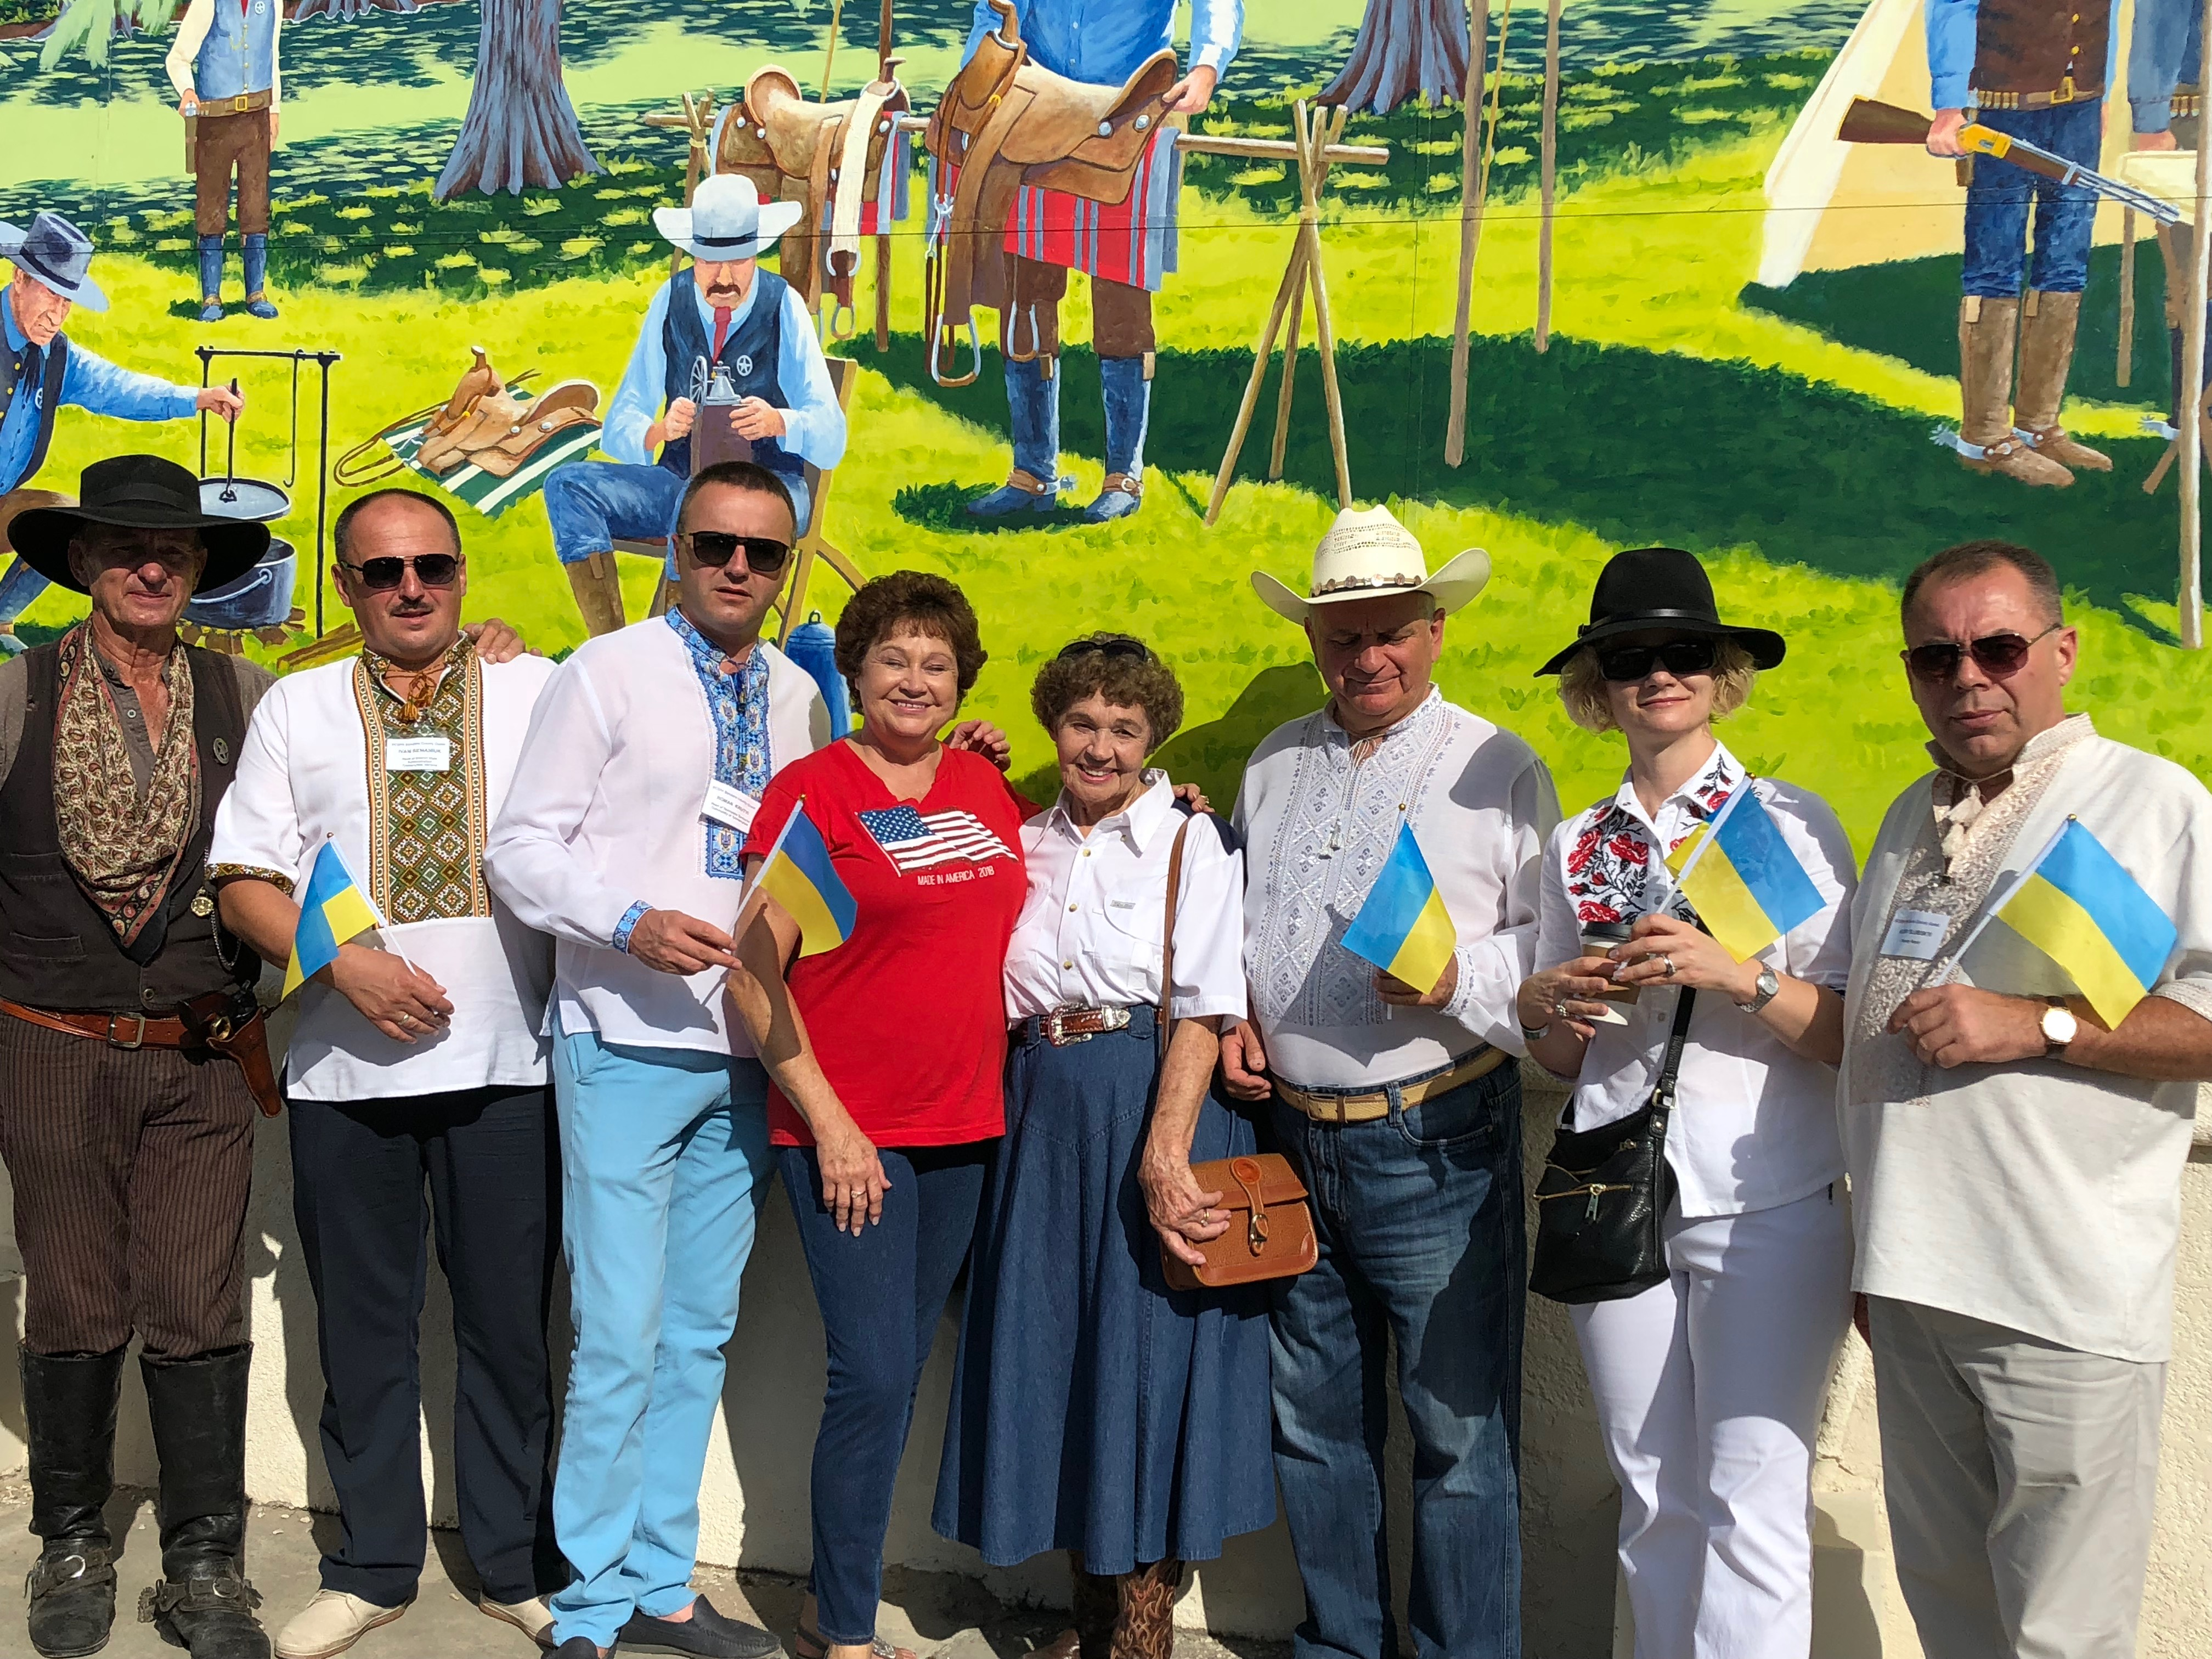 Delegation and volunteers pose in front of a mural